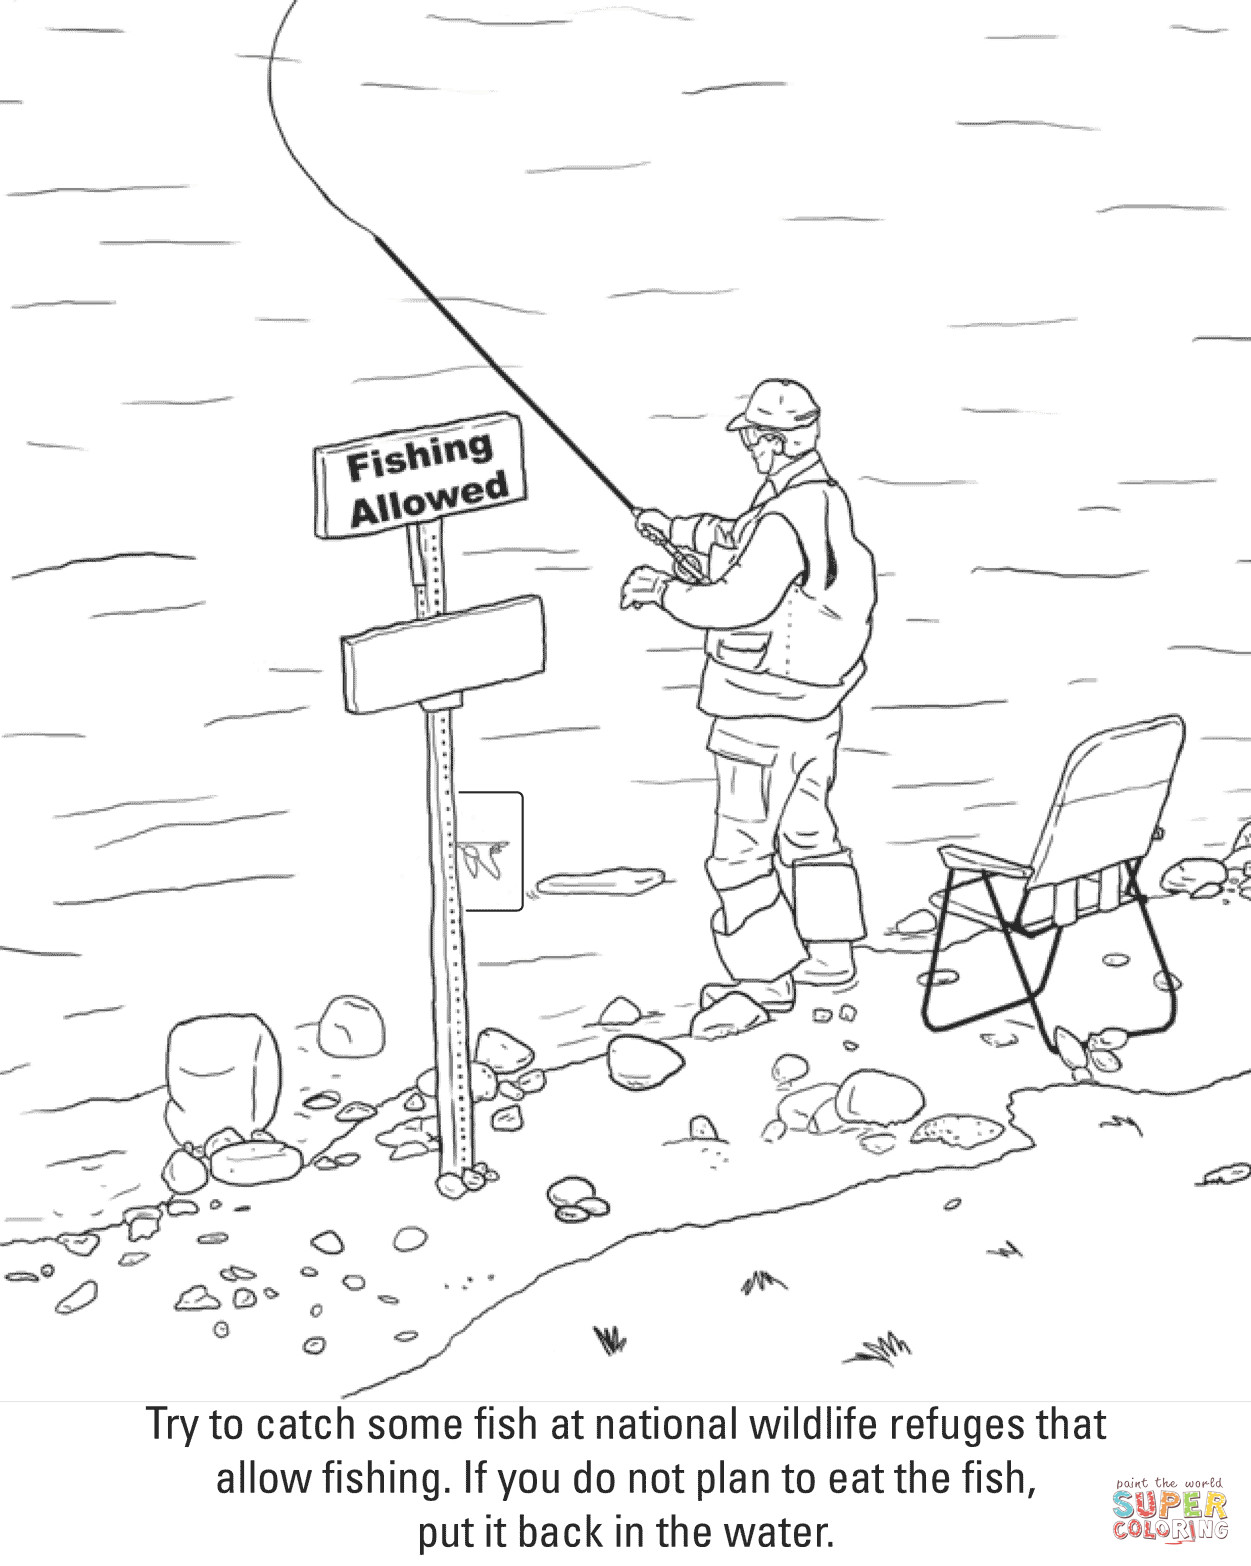 Best ideas about Fishing Printable Coloring Pages . Save or Pin Fishing coloring page Now.